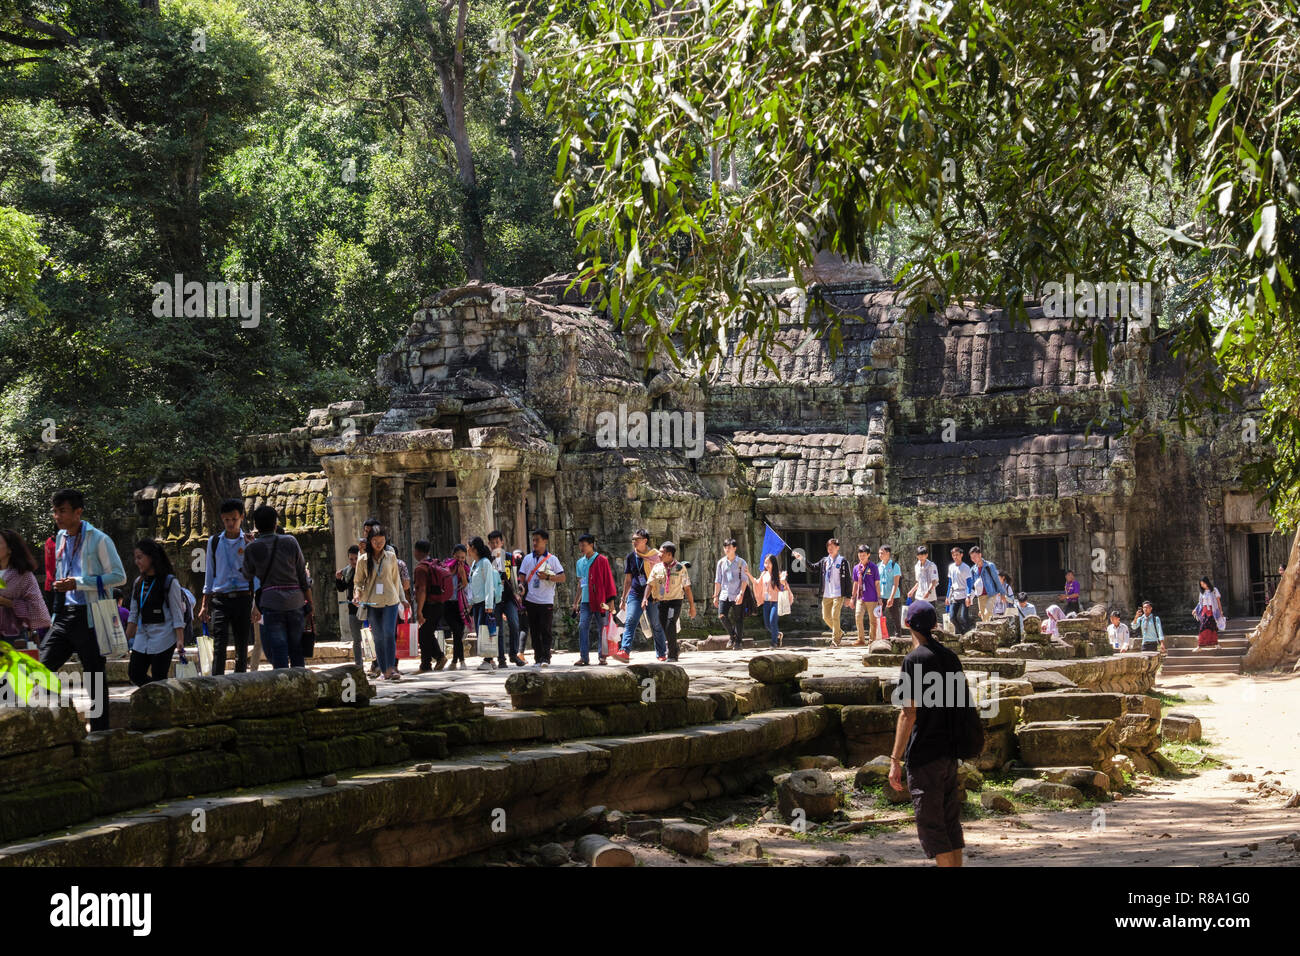 Large numbers of tourists at Ta Prohm Temple ruins in a jungle location. Siem Reap, Cambodia, southeast Asia Stock Photo